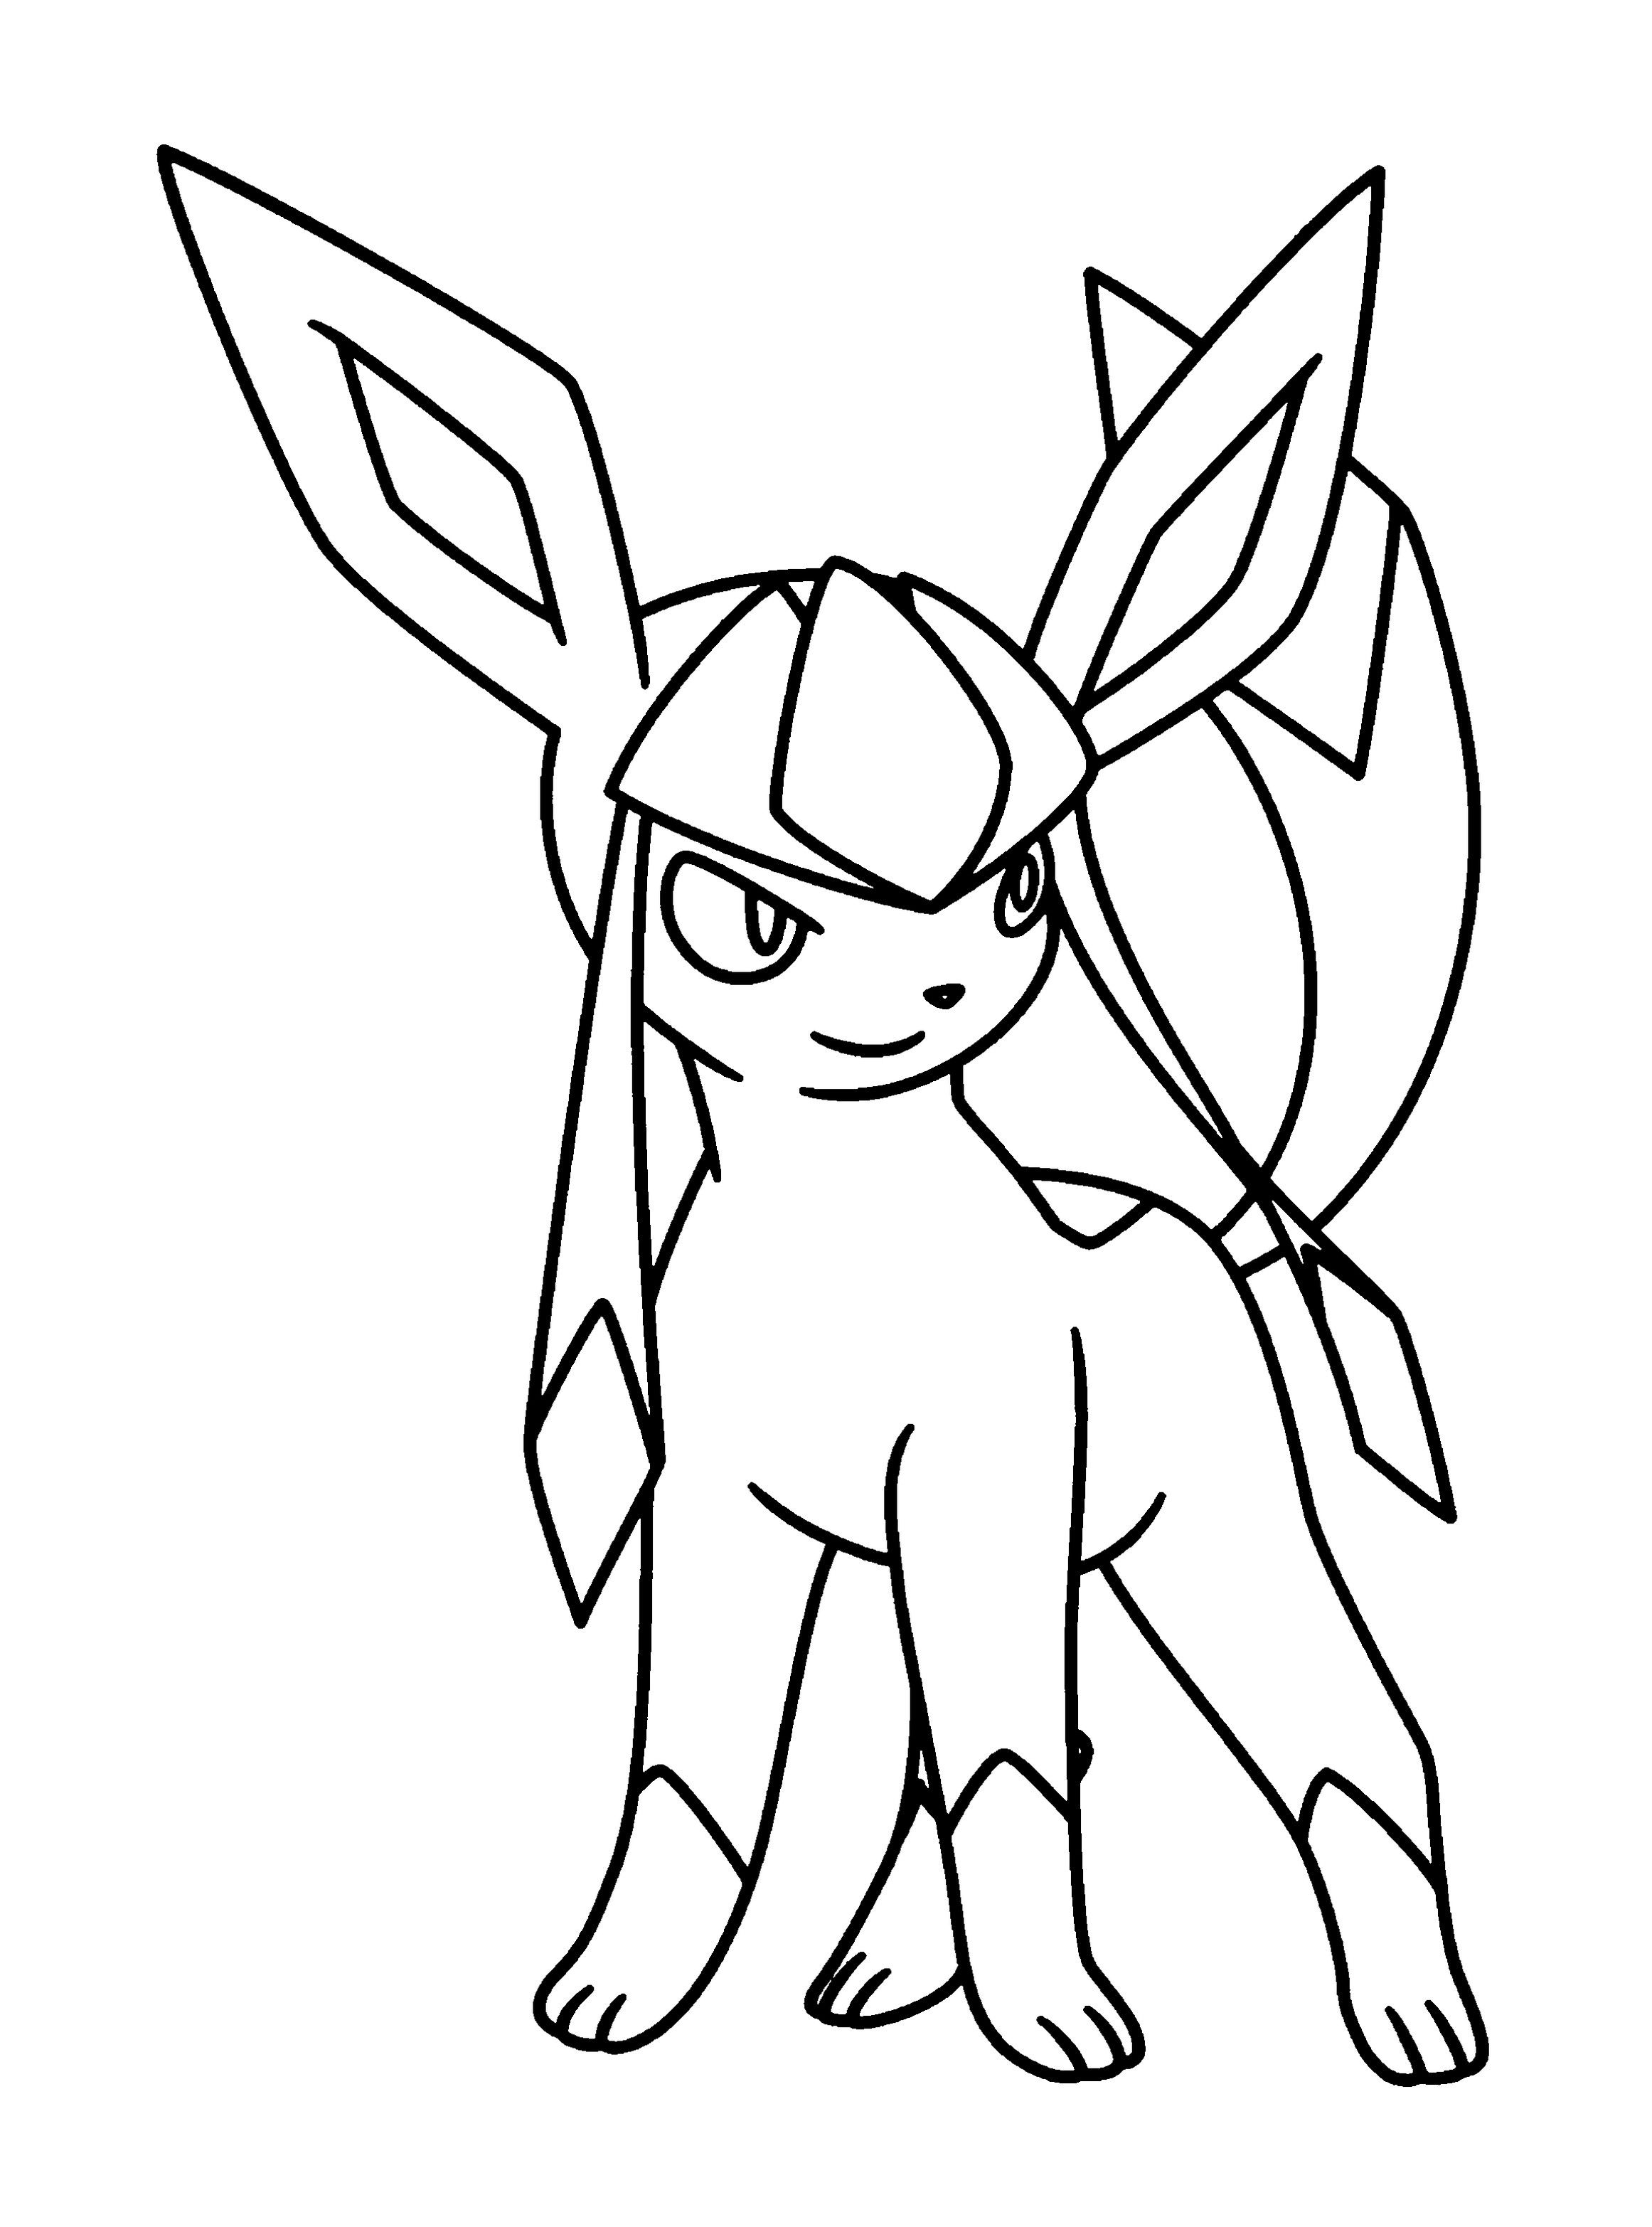 Glaceon Coloring Sheets Pokemon Coloring Pages Pokemon Coloring Pokemon Coloring Sheets